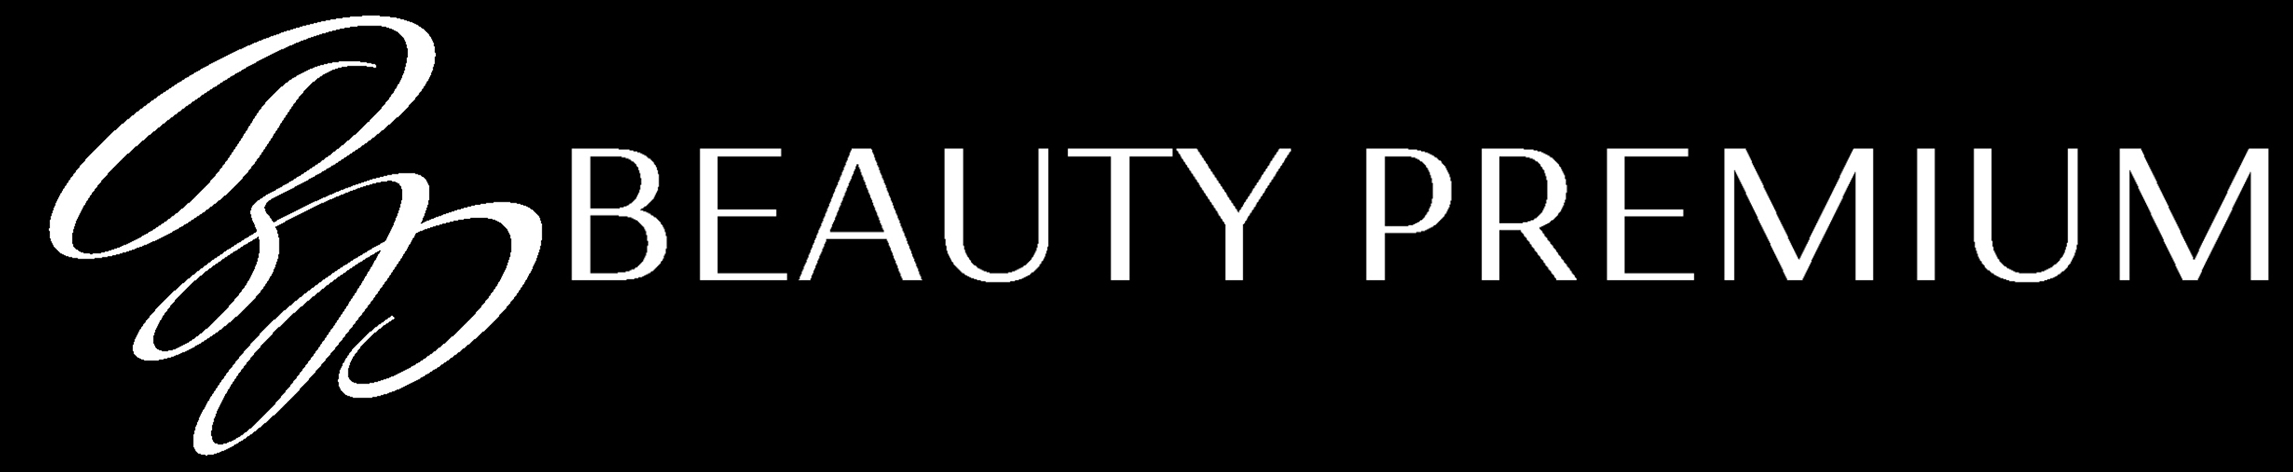 Beauty Premium